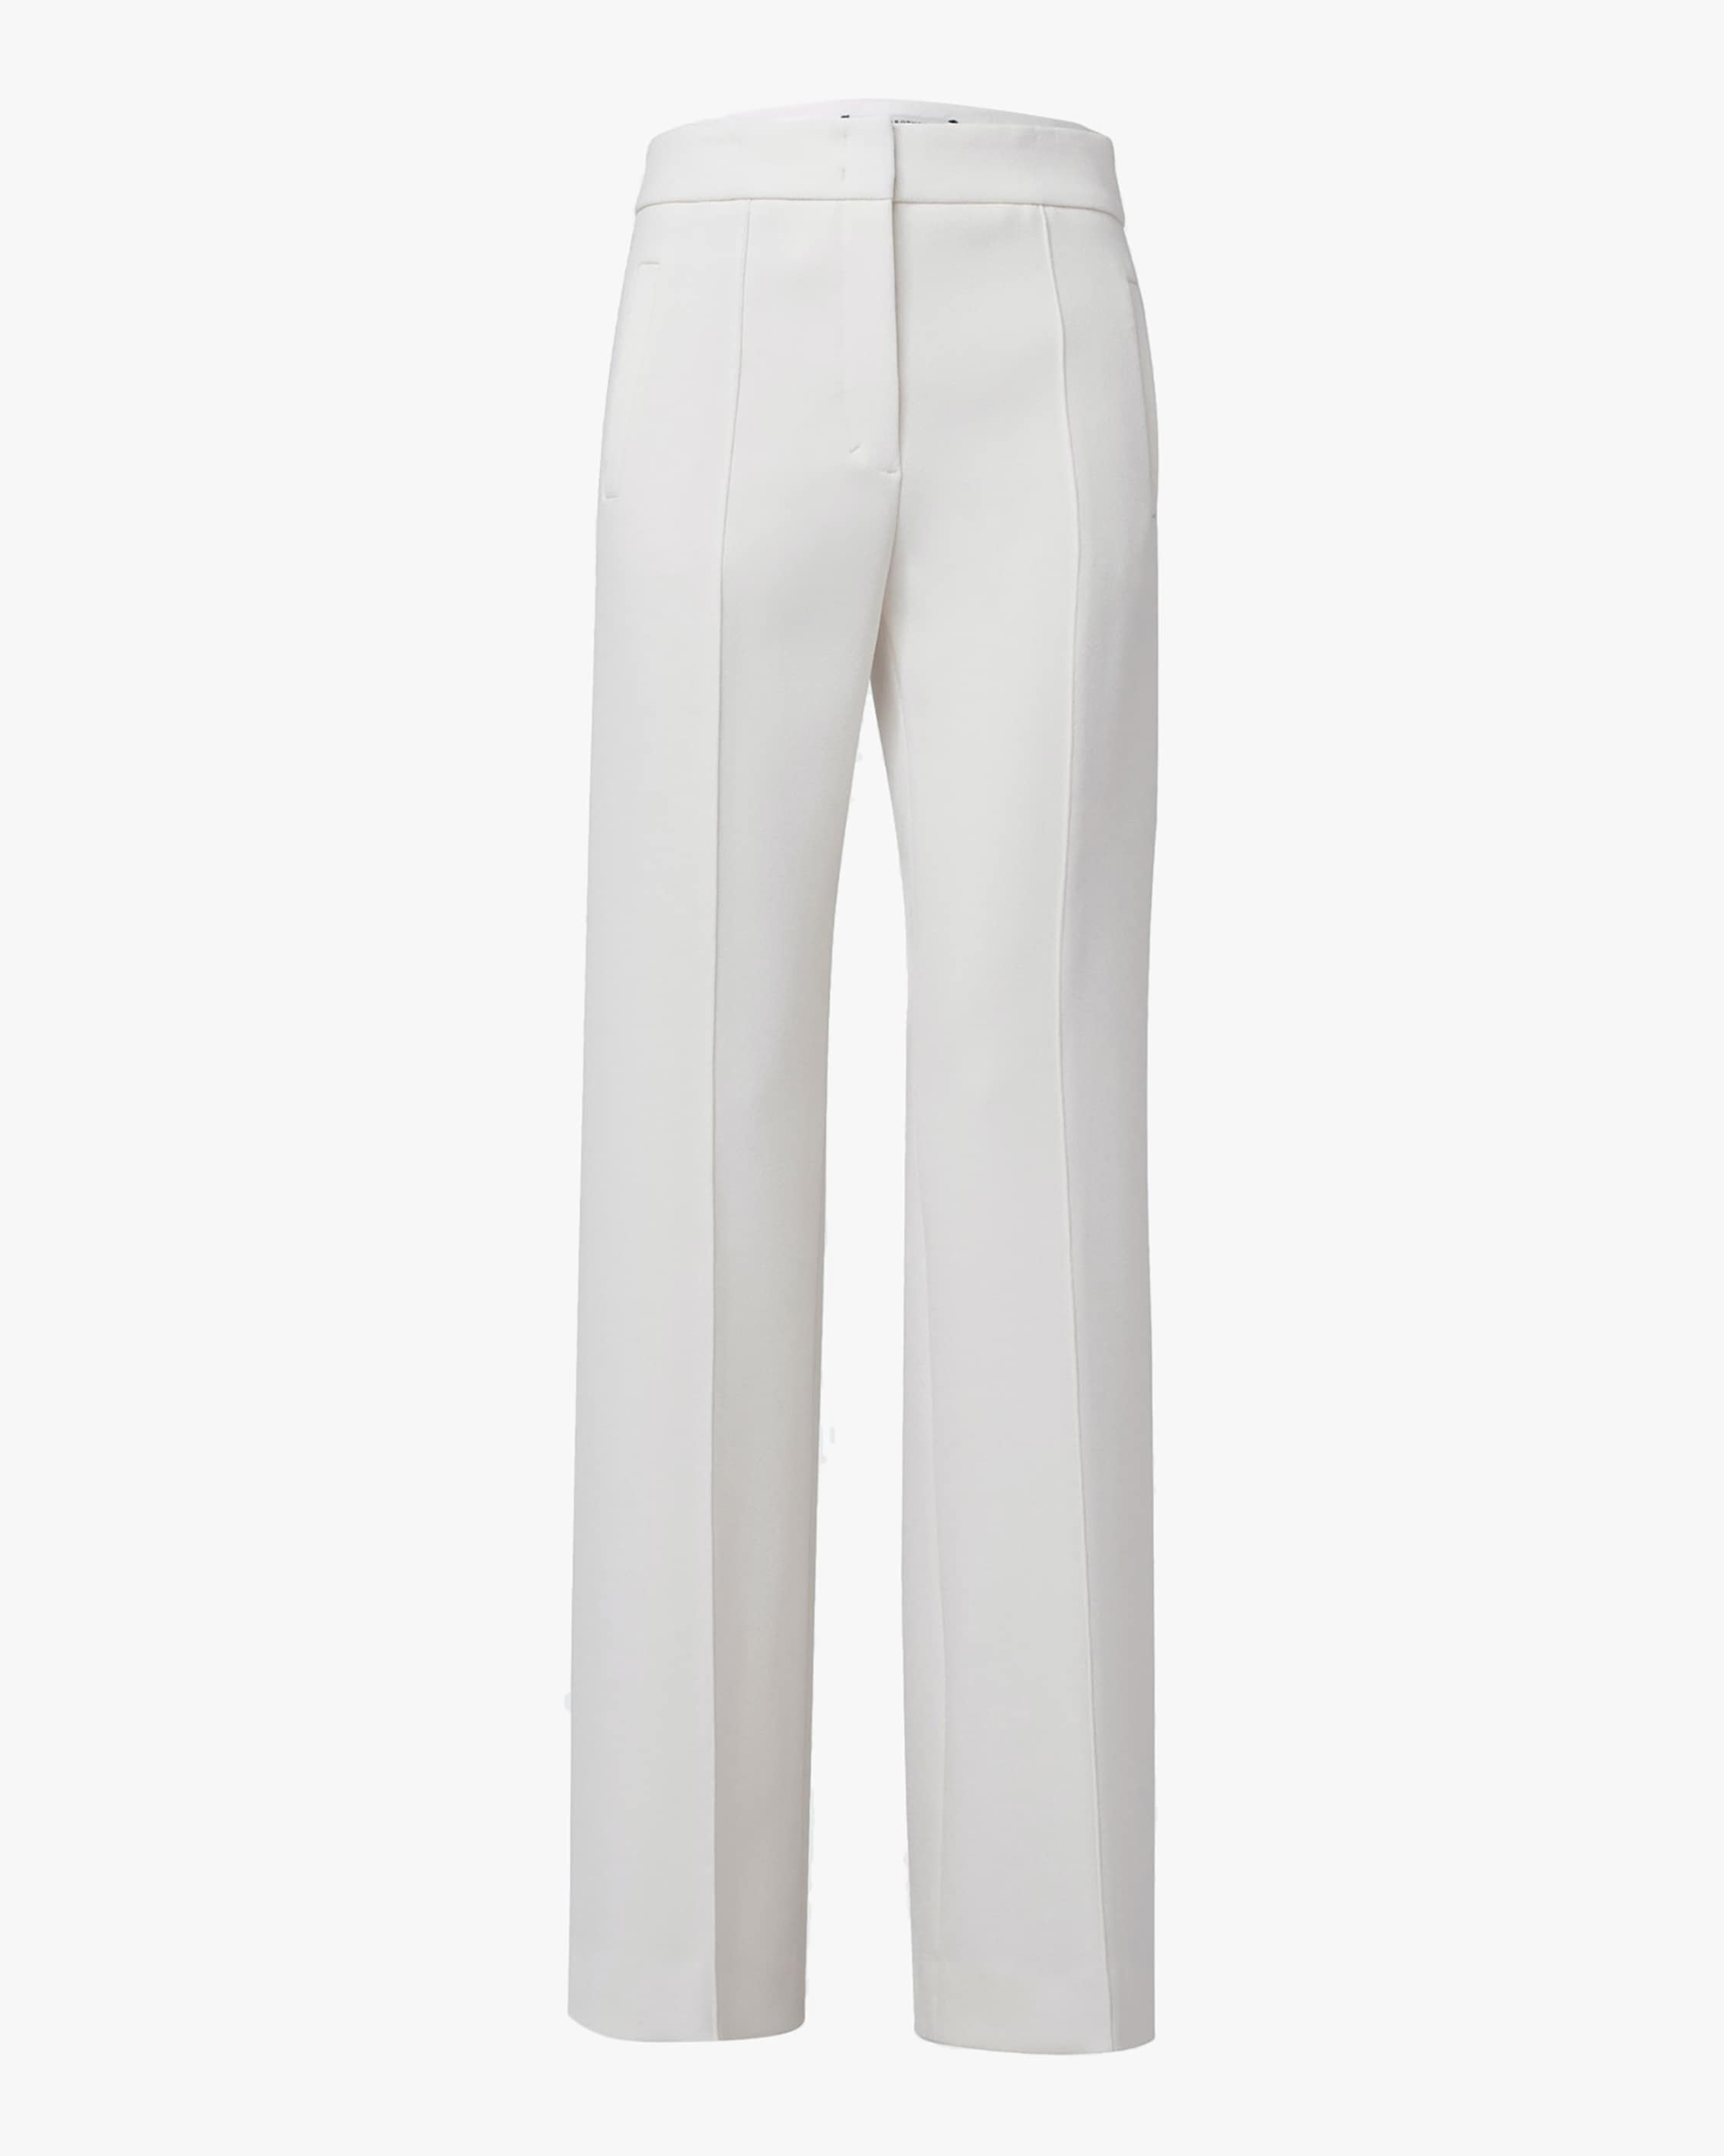 Dorothee Schumacher Pants SOPHISTICATED PERFECTION PANTS